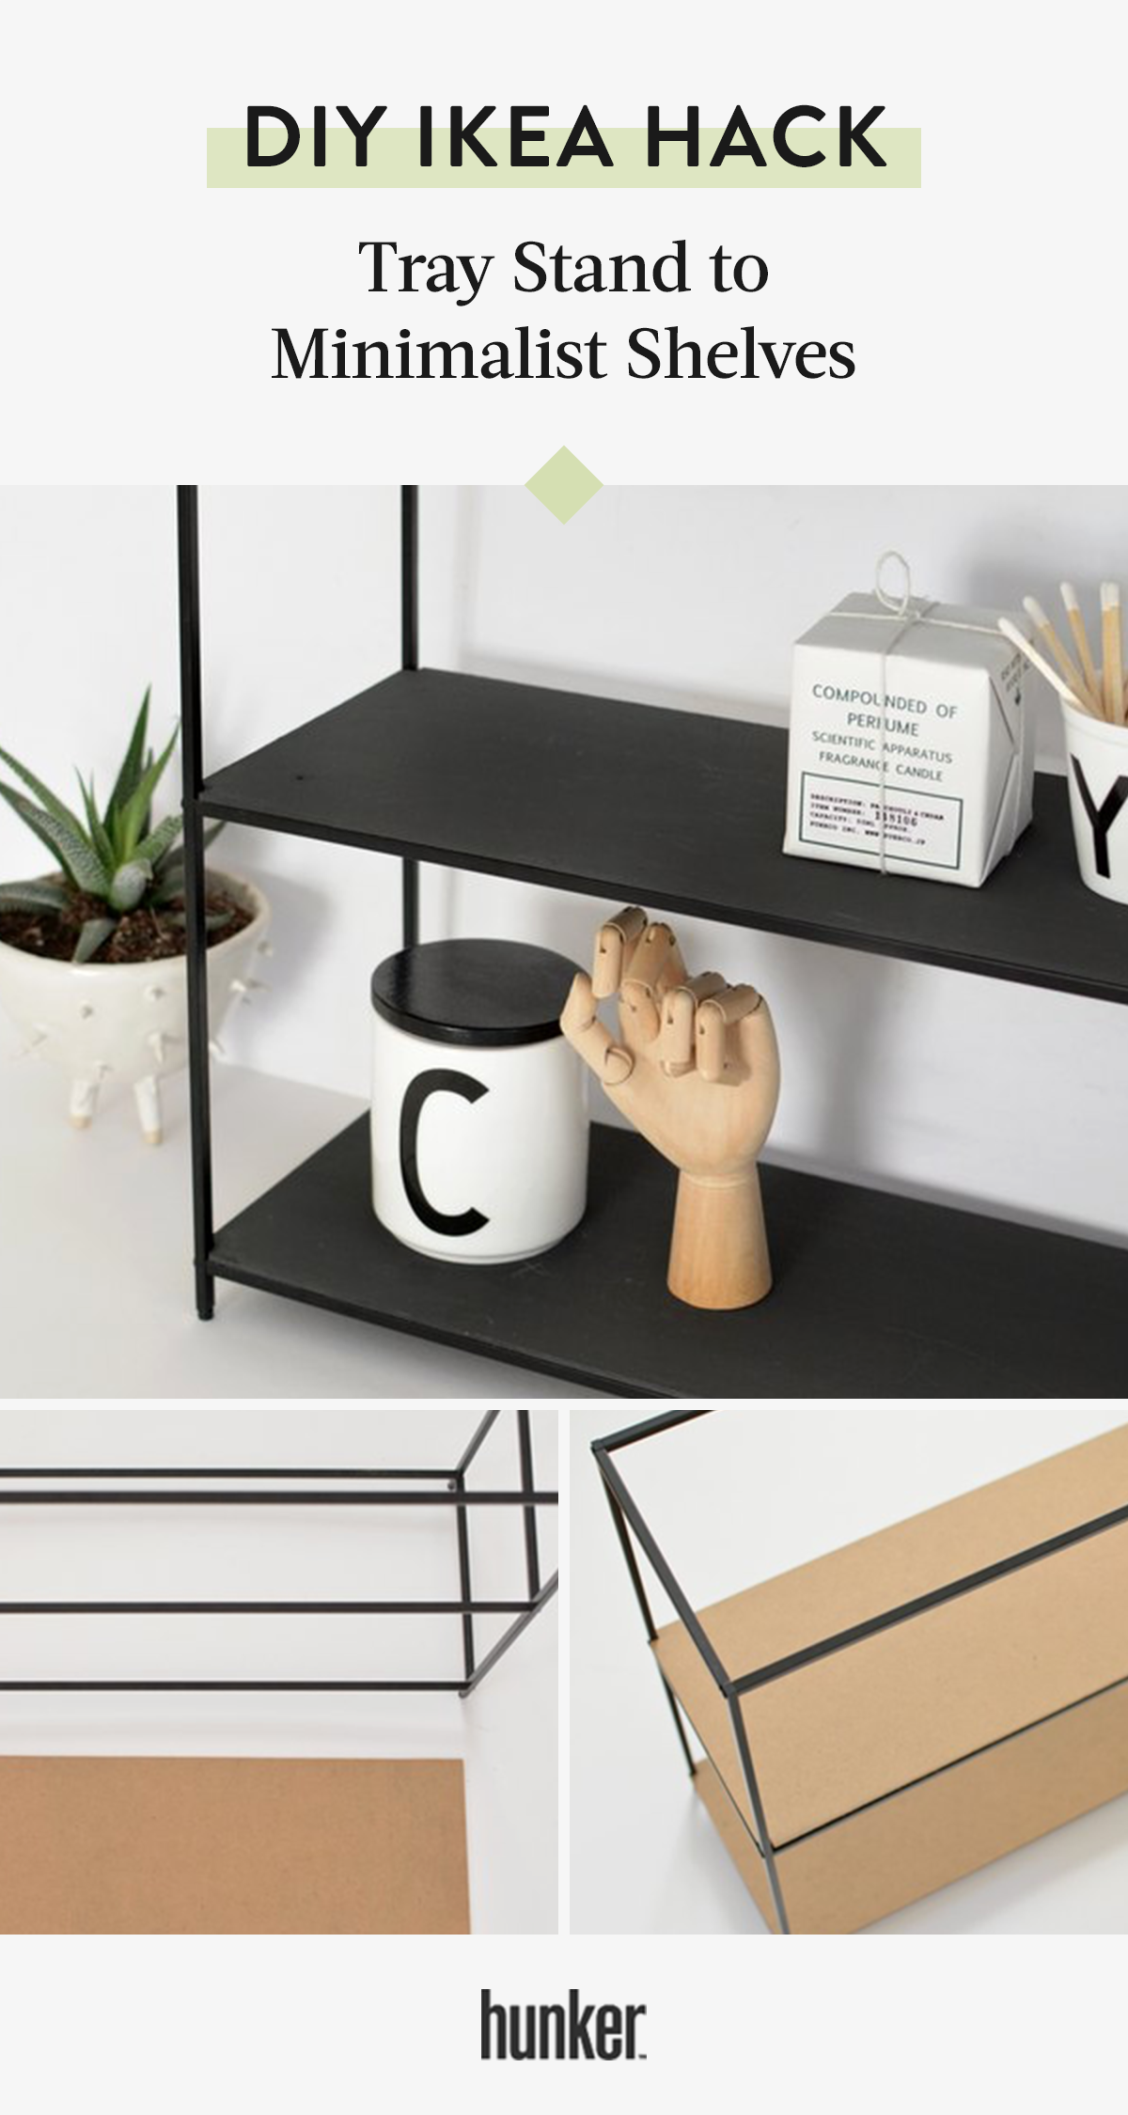 We Really Feel Like You Need To Try This Ikea Hack From Tray Stand To Modern Shelves Hunker Metal Kitchen Shelves Minimalist Shelves Kitchen Storage Shelves [ 2115 x 1128 Pixel ]